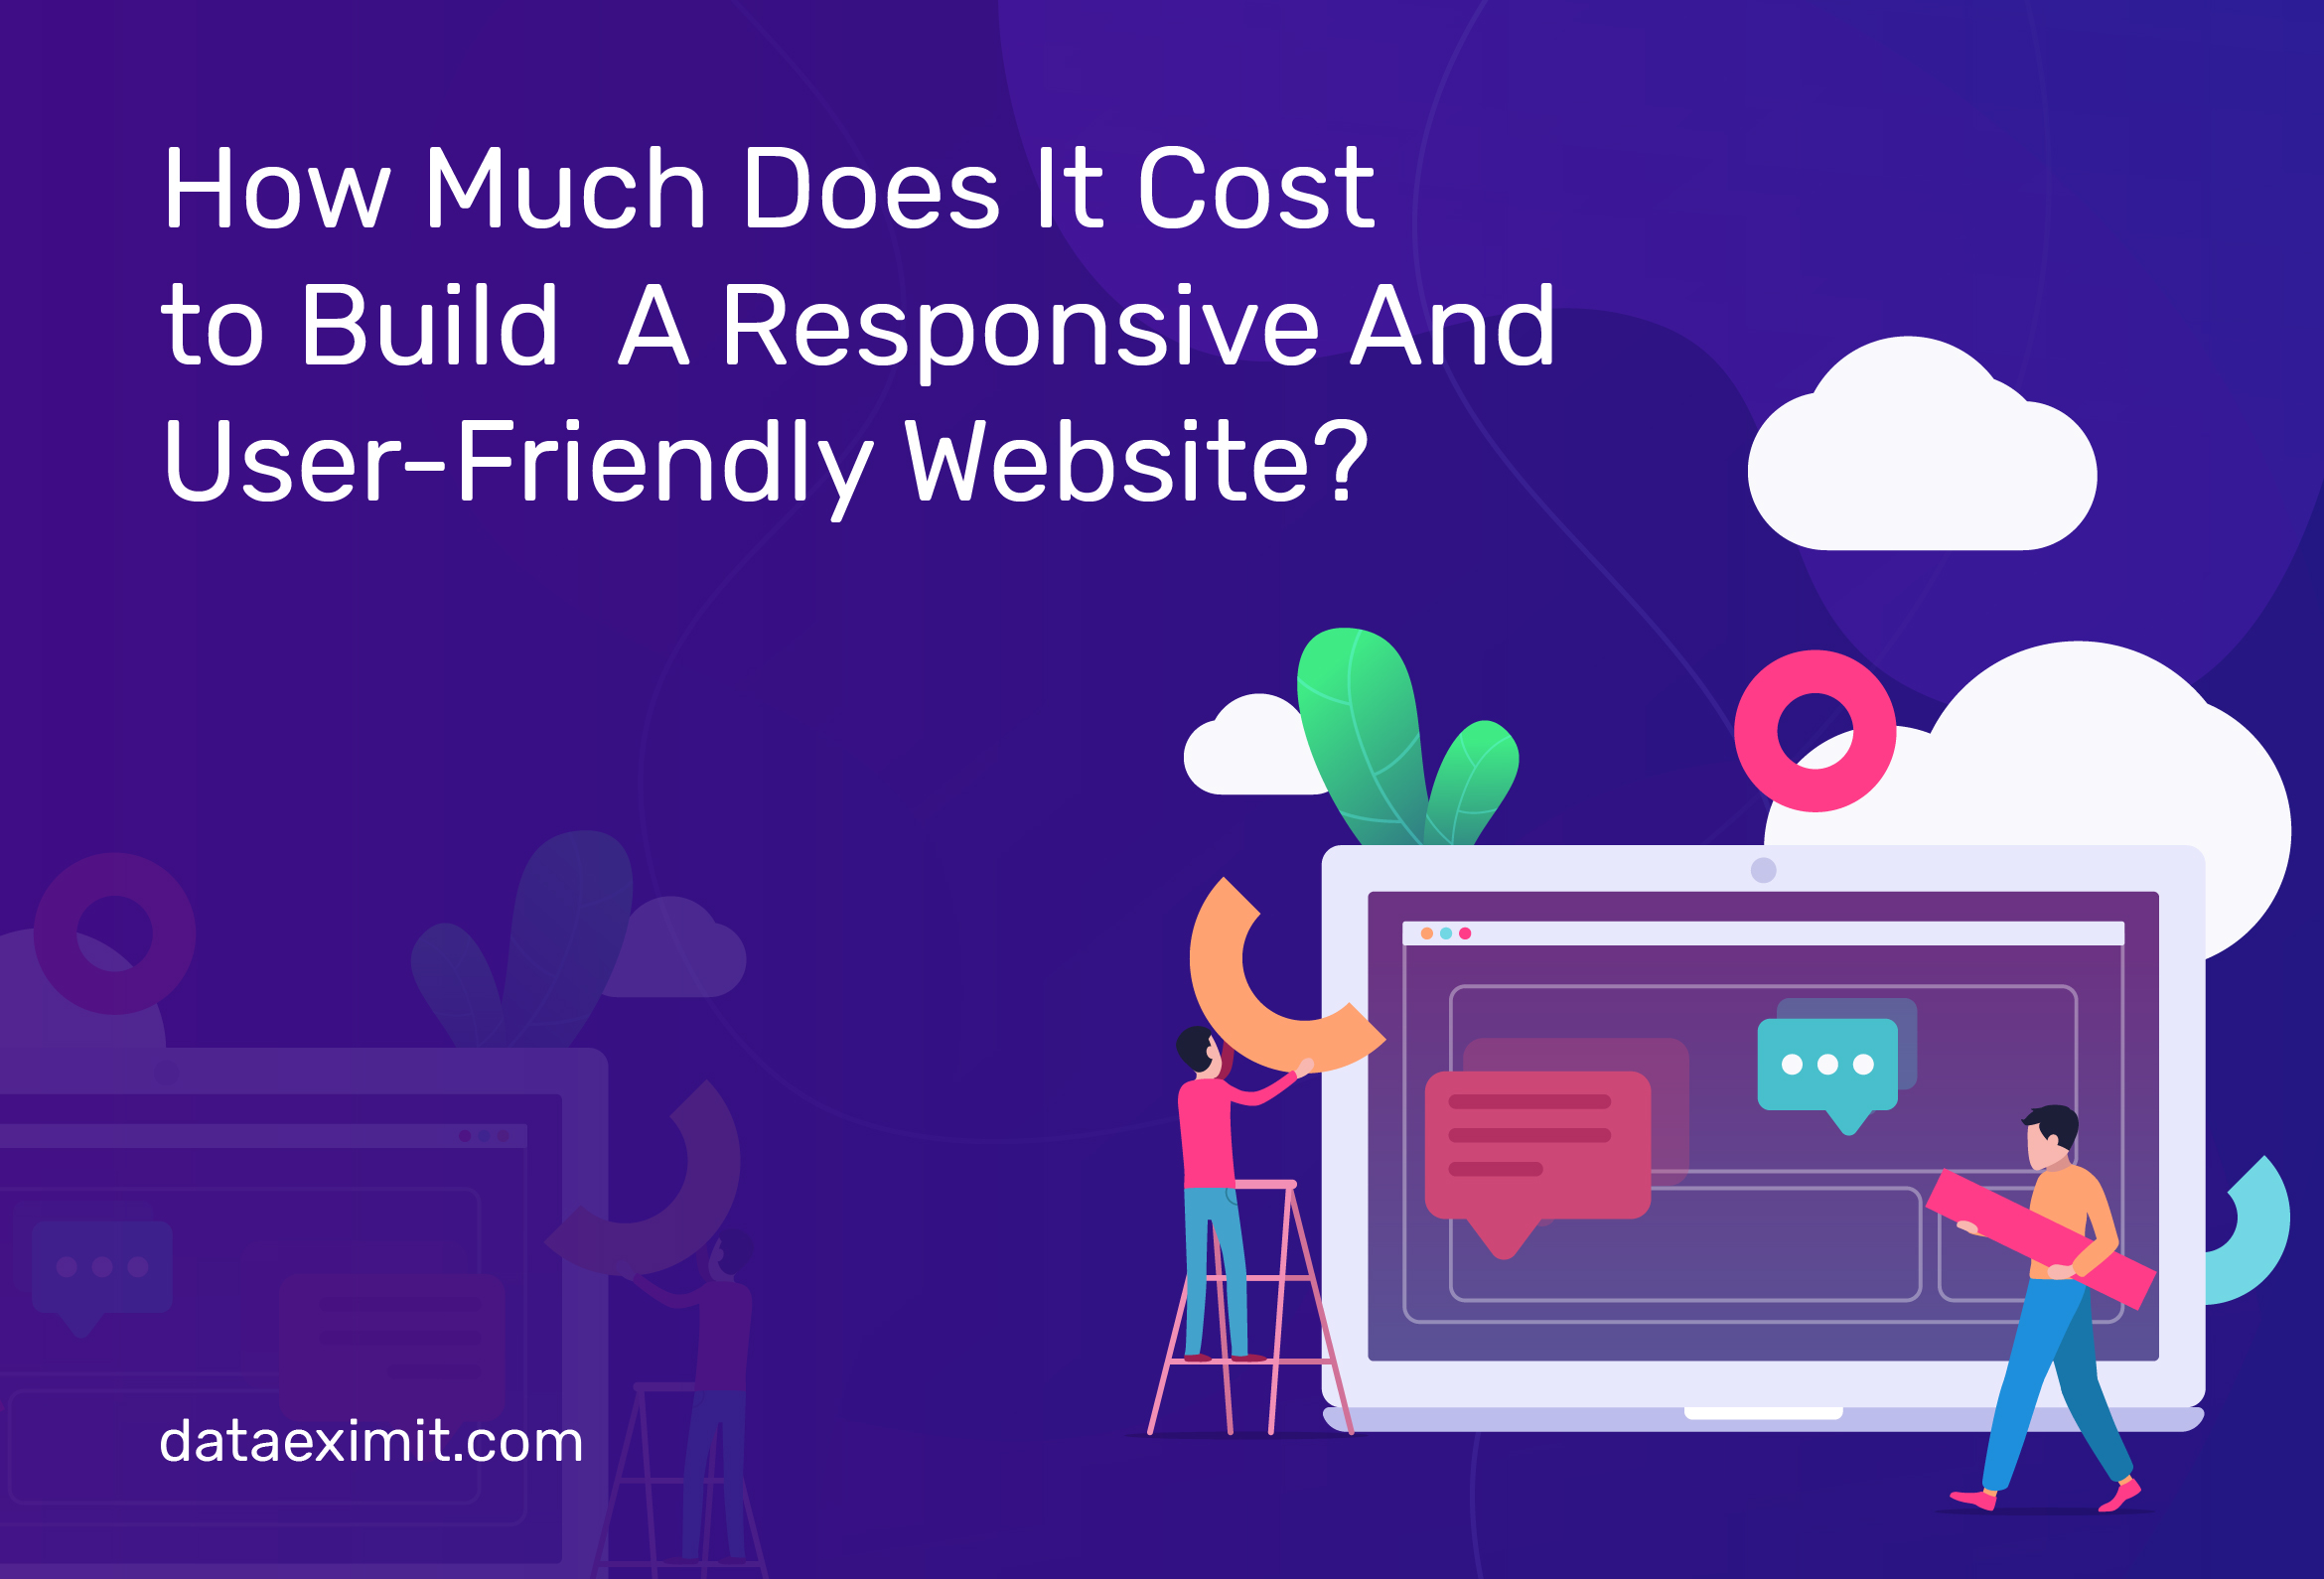 How Much Does It Cost to Develop A Responsive Website For A Startup?